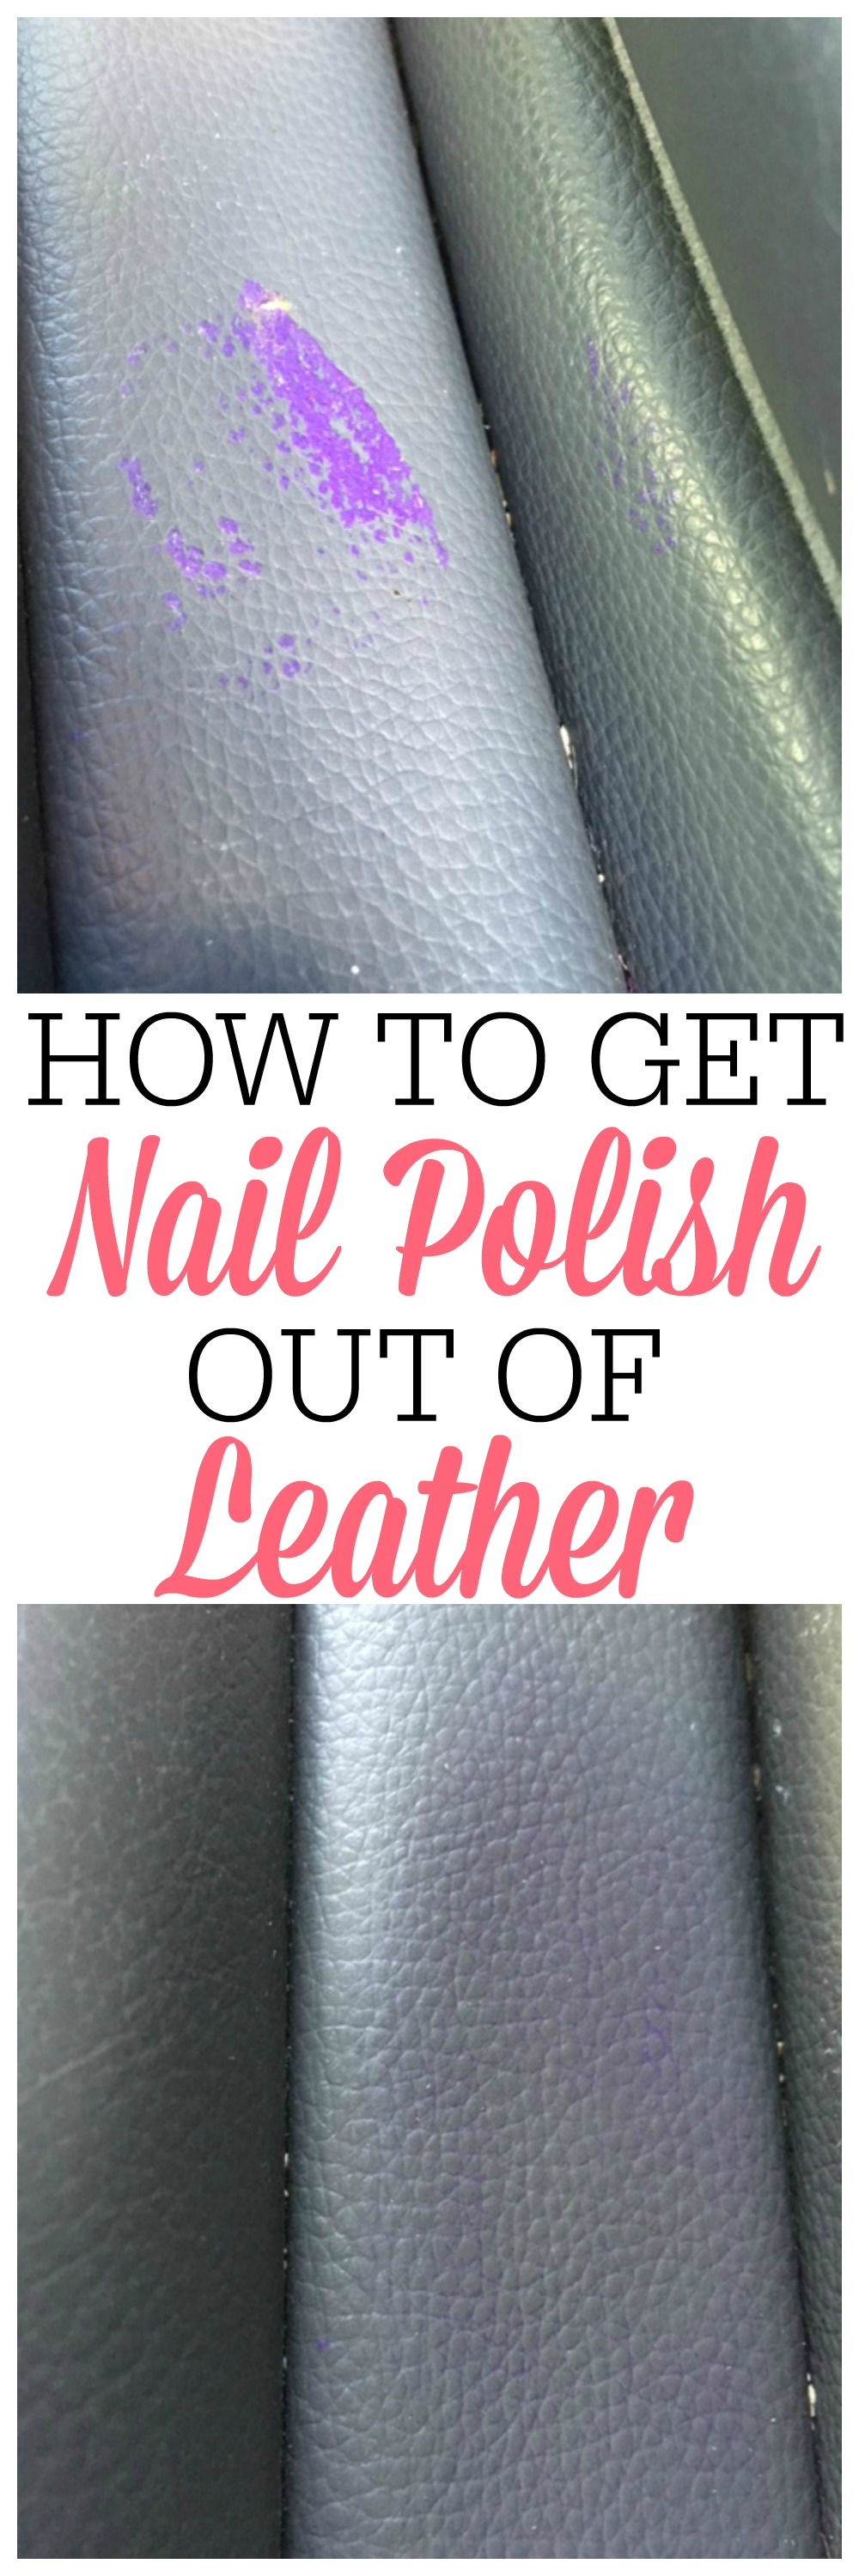 How To Get Nail Polish Out Of Leather Frugally Blonde